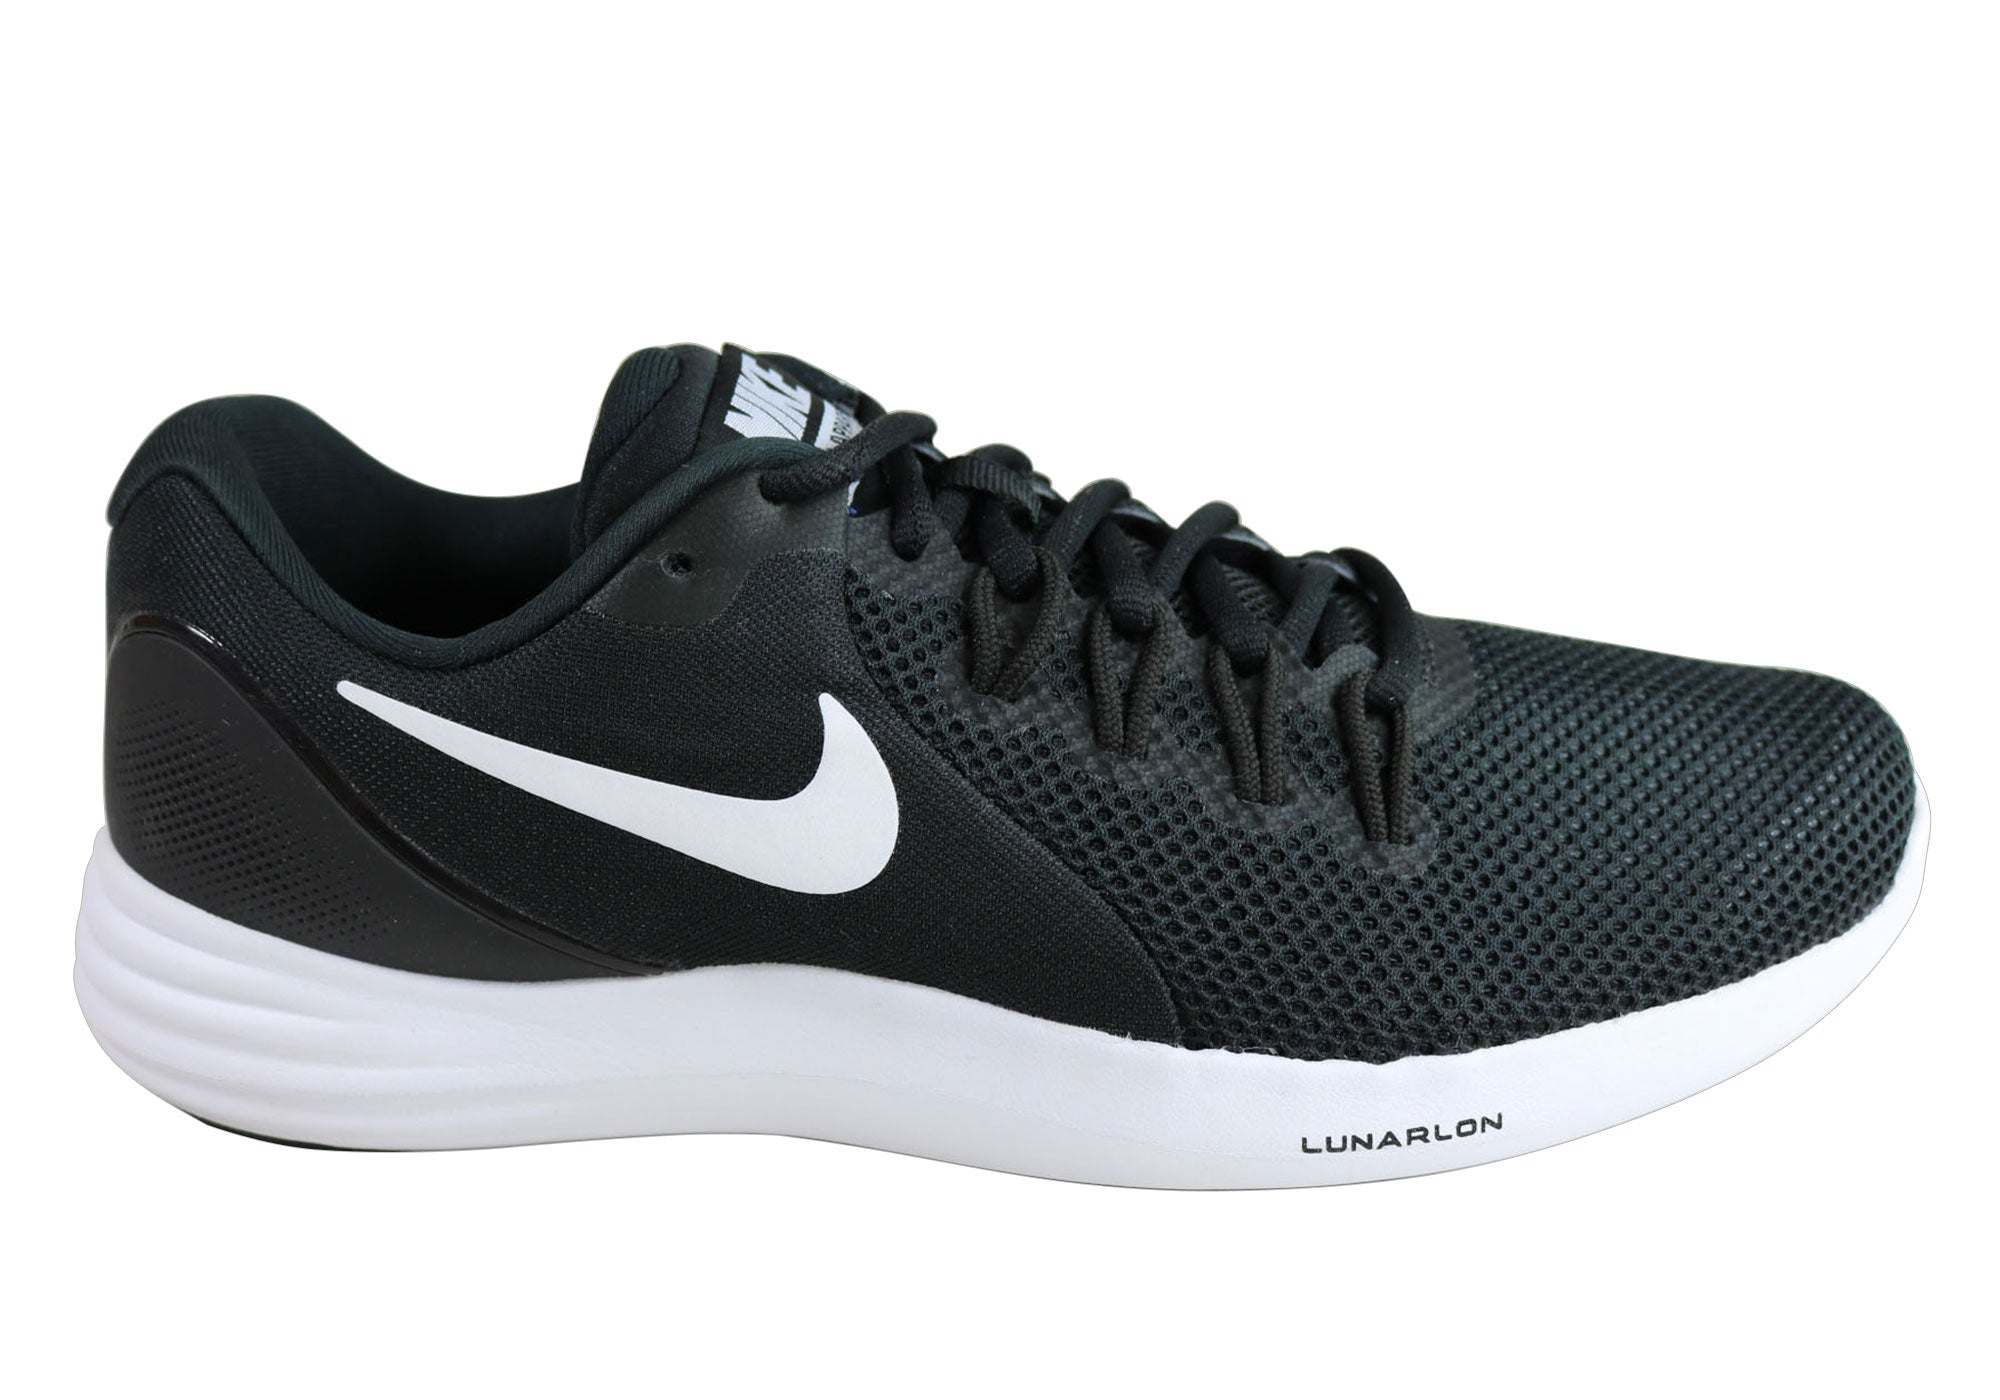 ac12a032b9e77 Home Nike Lunar Apparent Mens Cushioned Light Weight Running Shoes. Black   ...